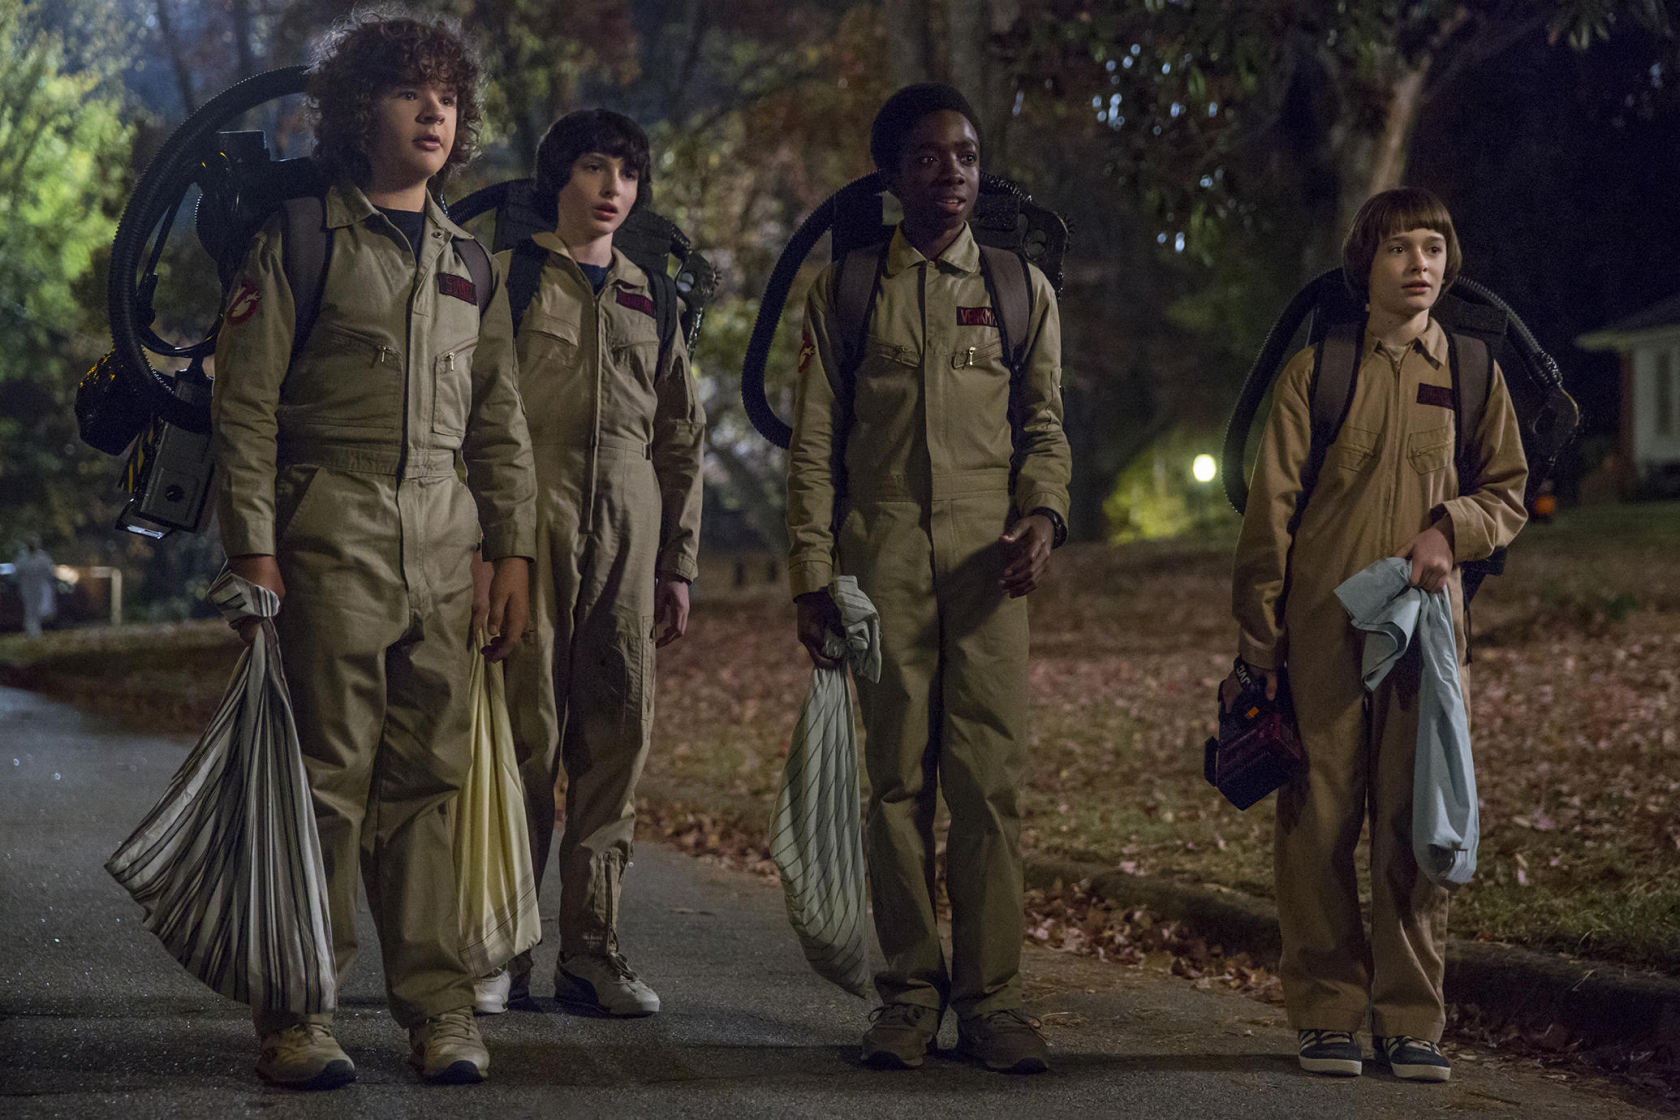 Over 361,000 US viewers binge-watched Stranger Things season 2 last weekend